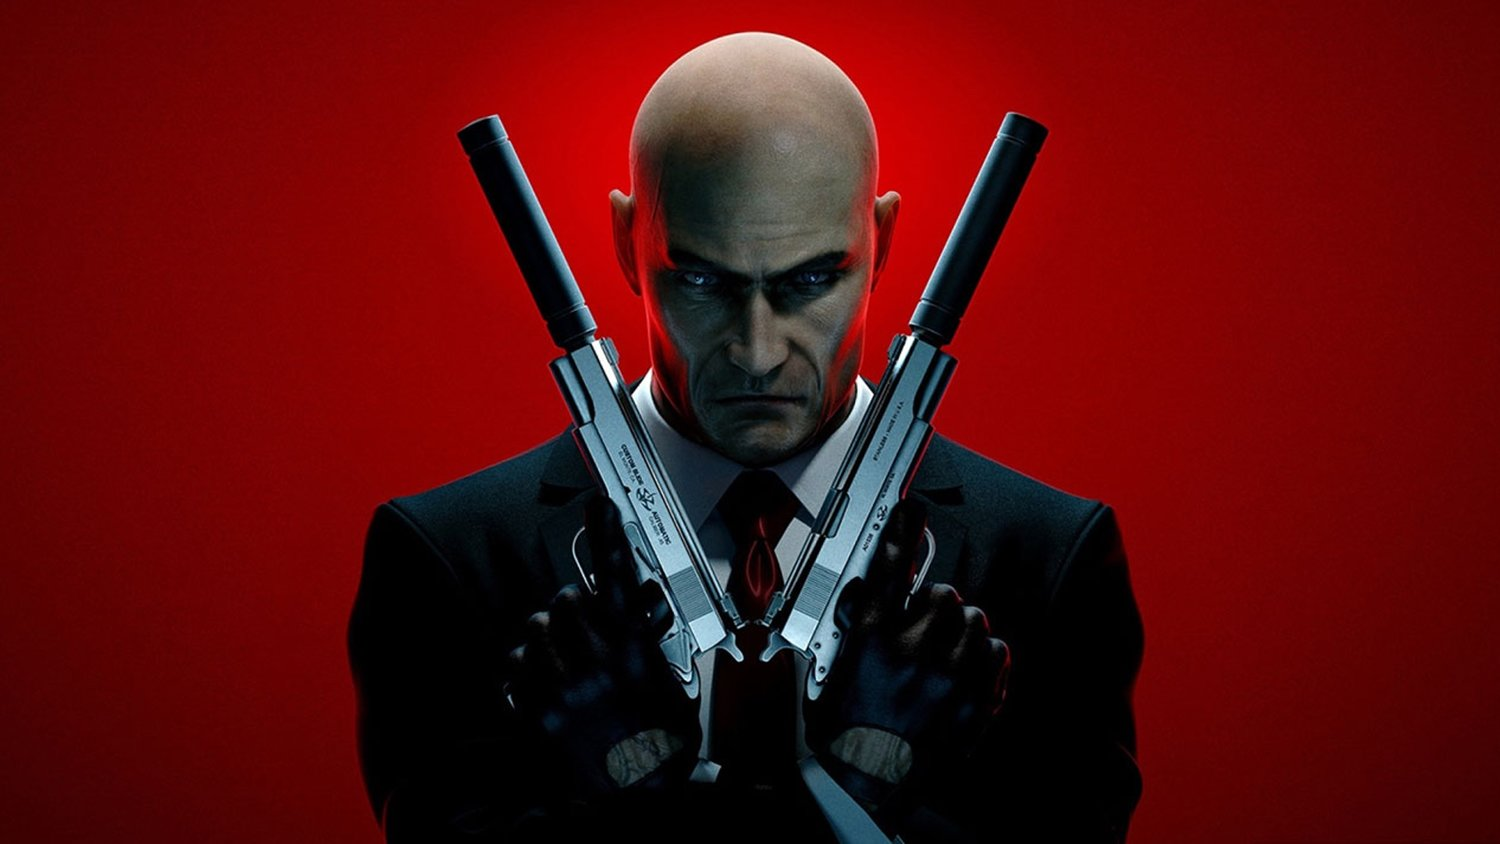 James Gunn Tried Making a HITMAN Movie, but the Studio Passed Due to the Rating